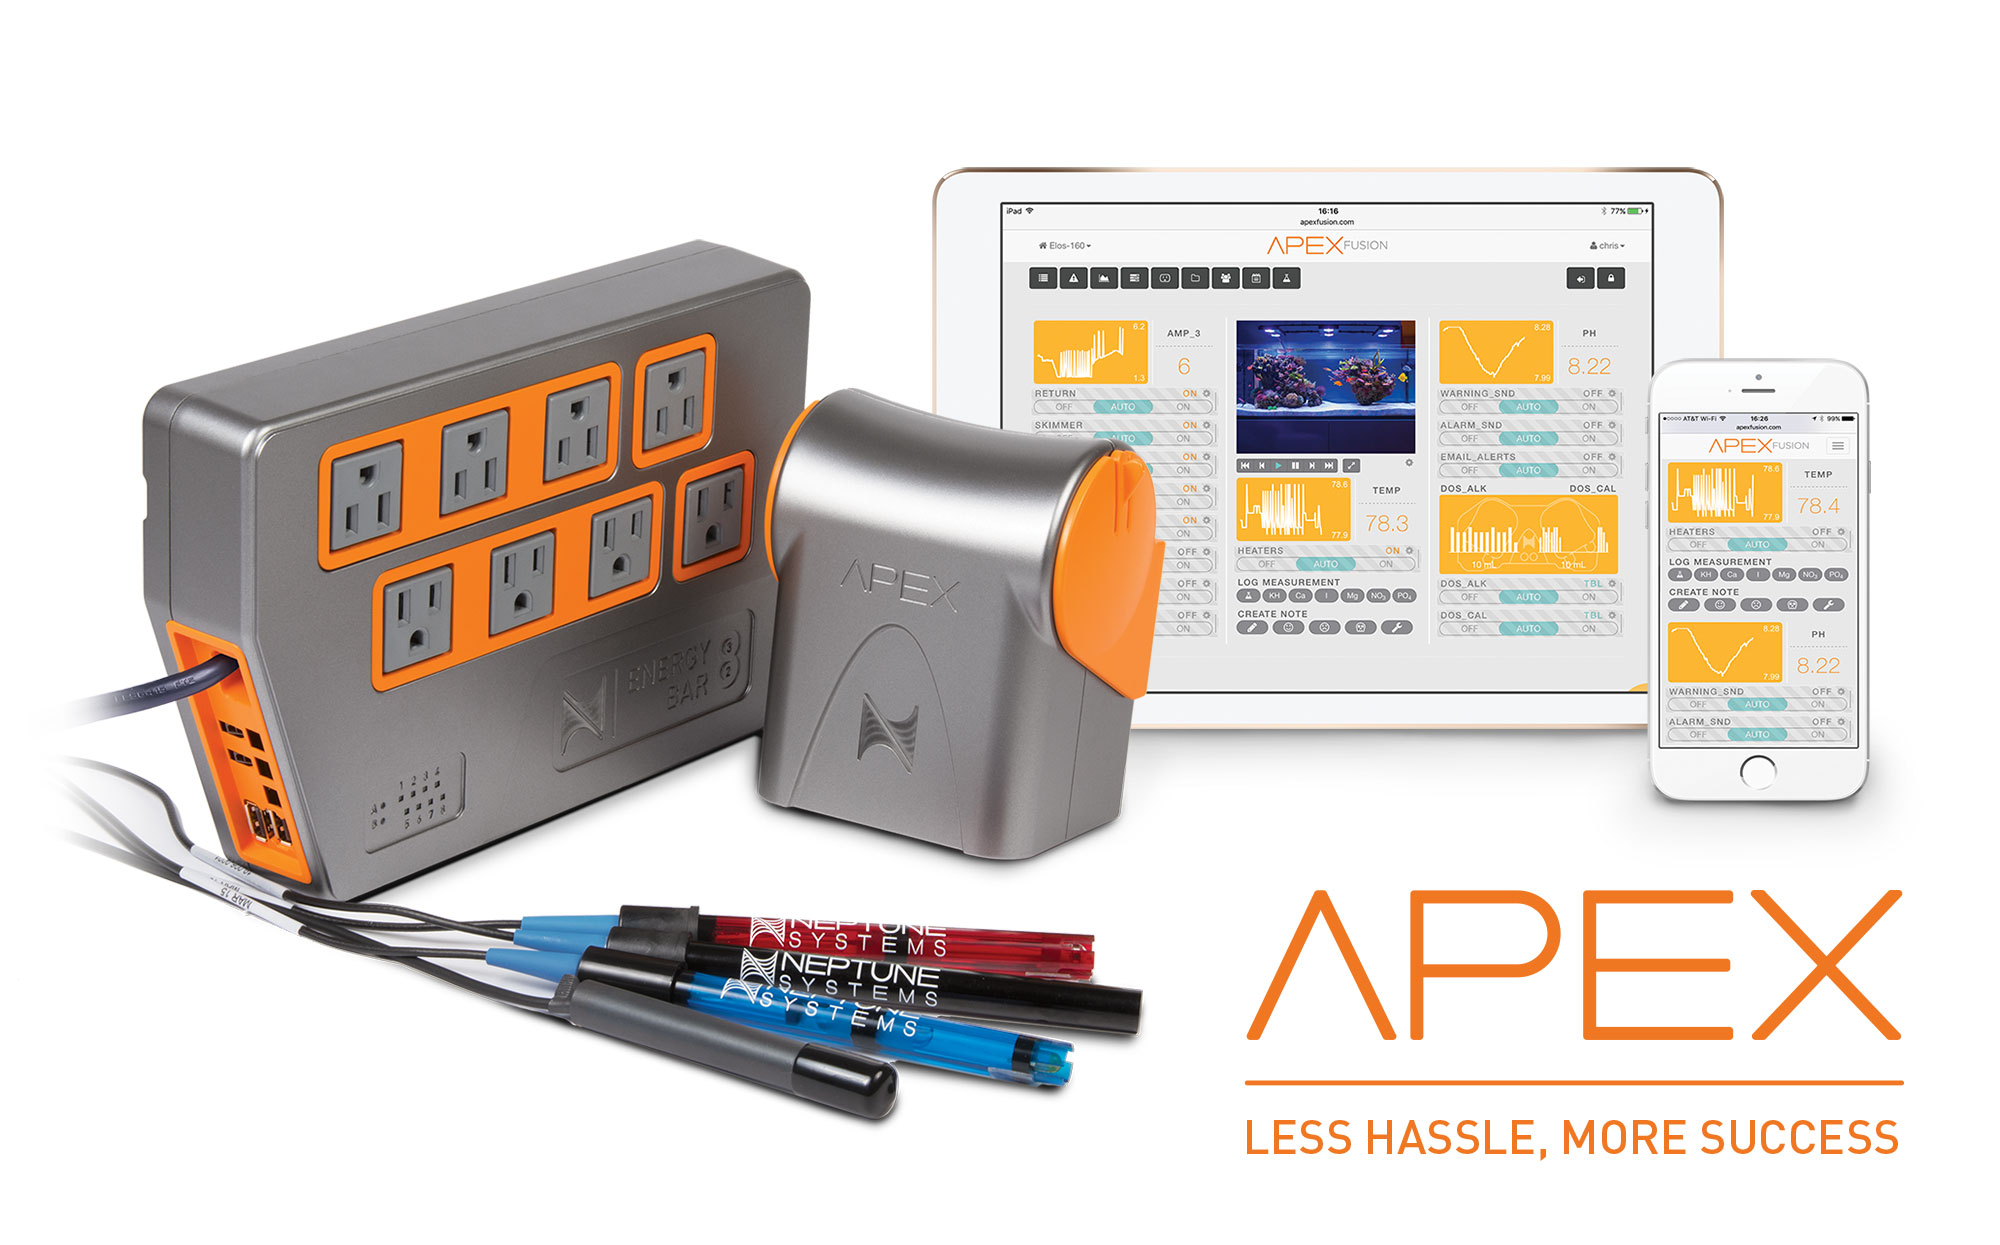 Neptune Systems Announces Next Generation Of Apex